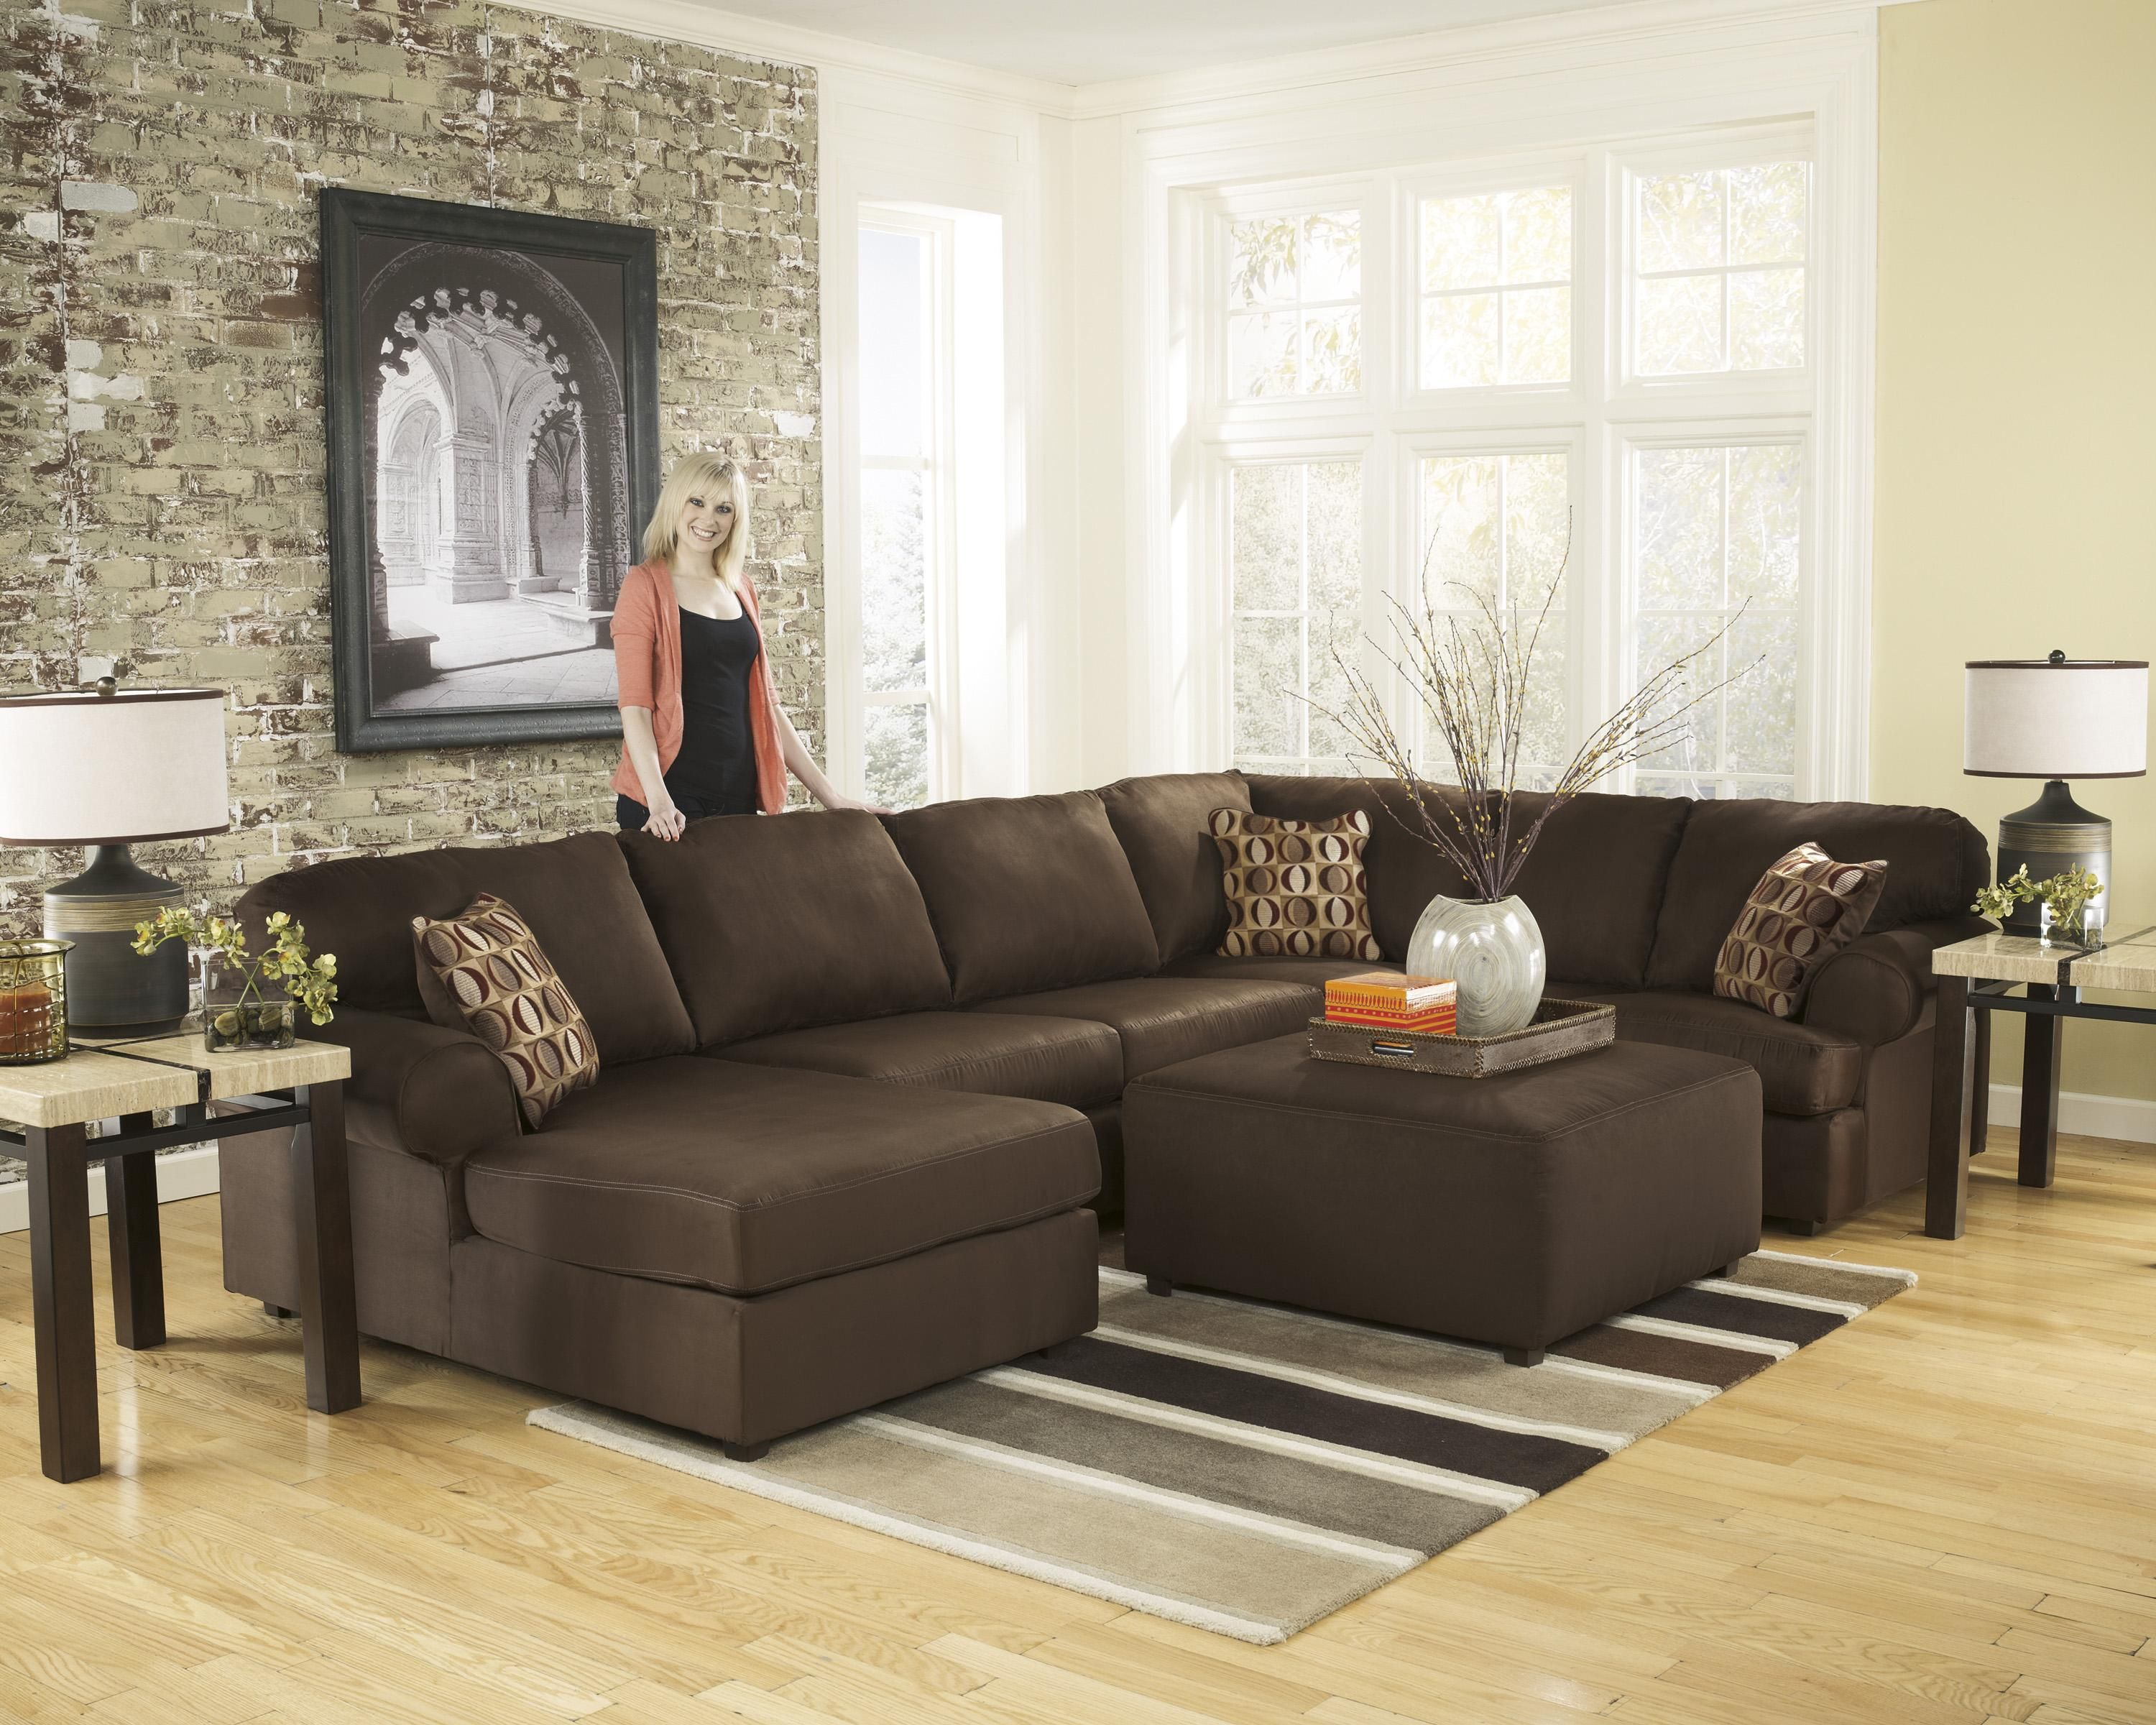 Signature Design by Ashley Cowan Cafe Stationary Living Room Group